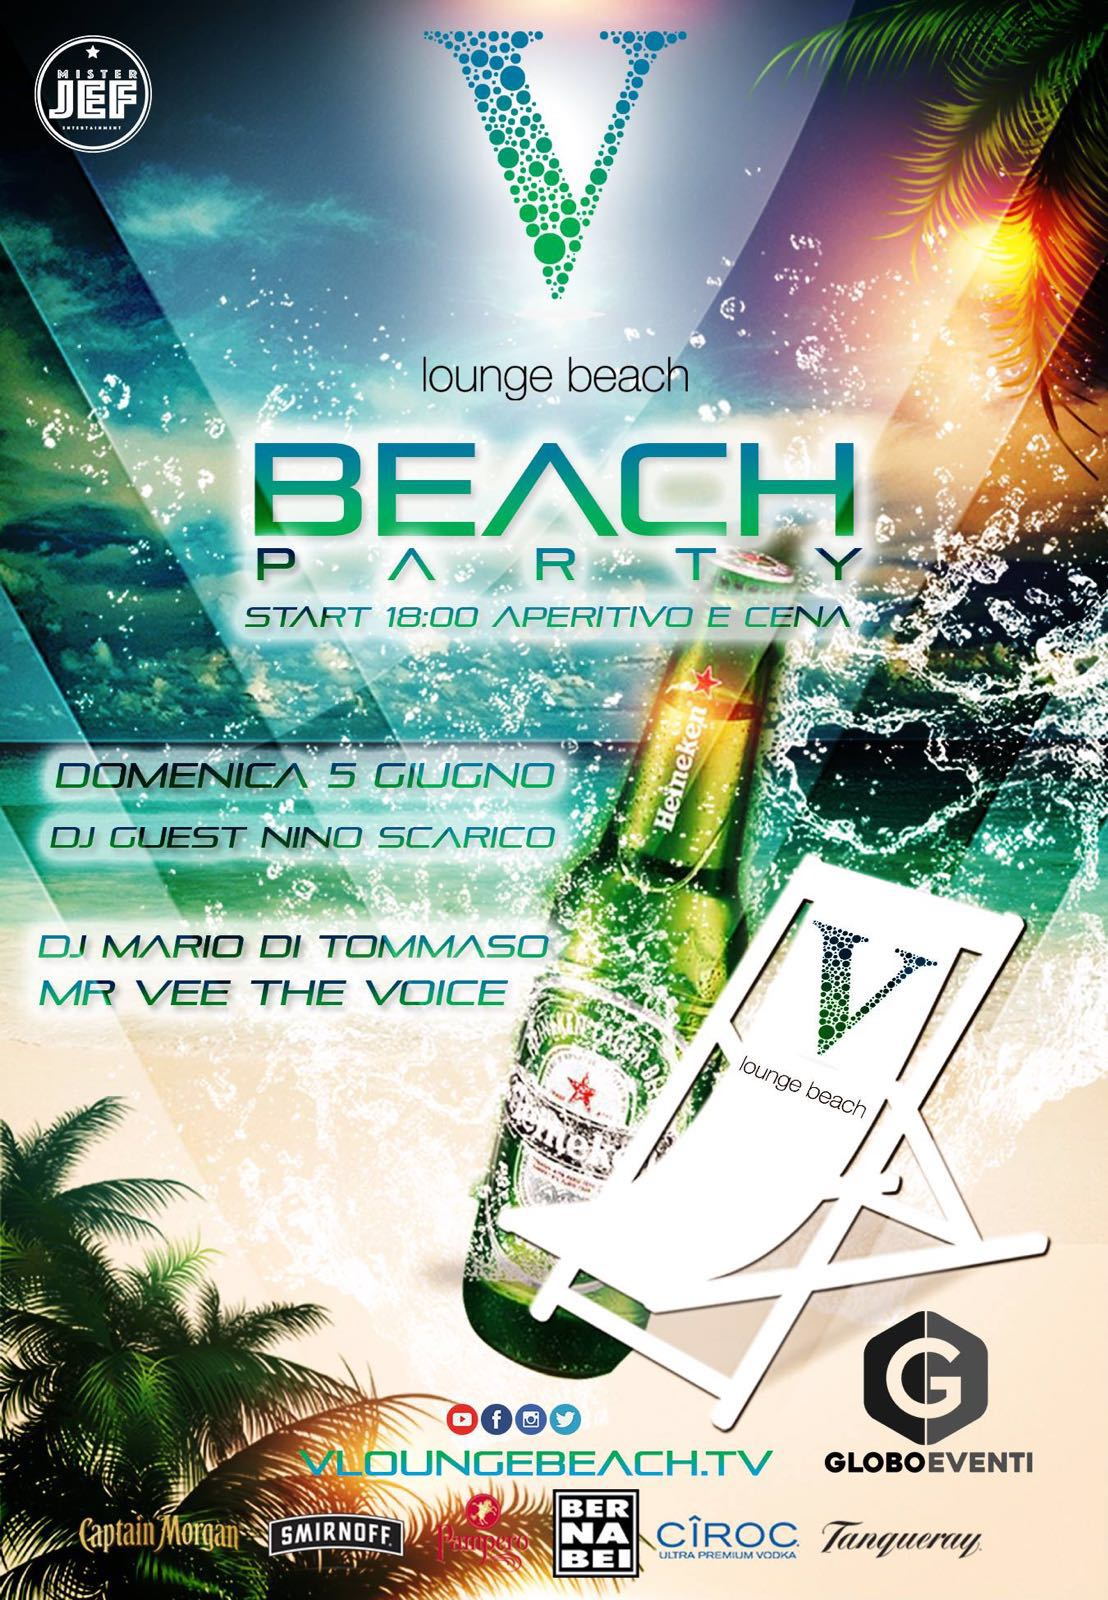 V lounge discoteca ostia beach party 5 giugno 2016 for Di tommaso arredamenti ostia